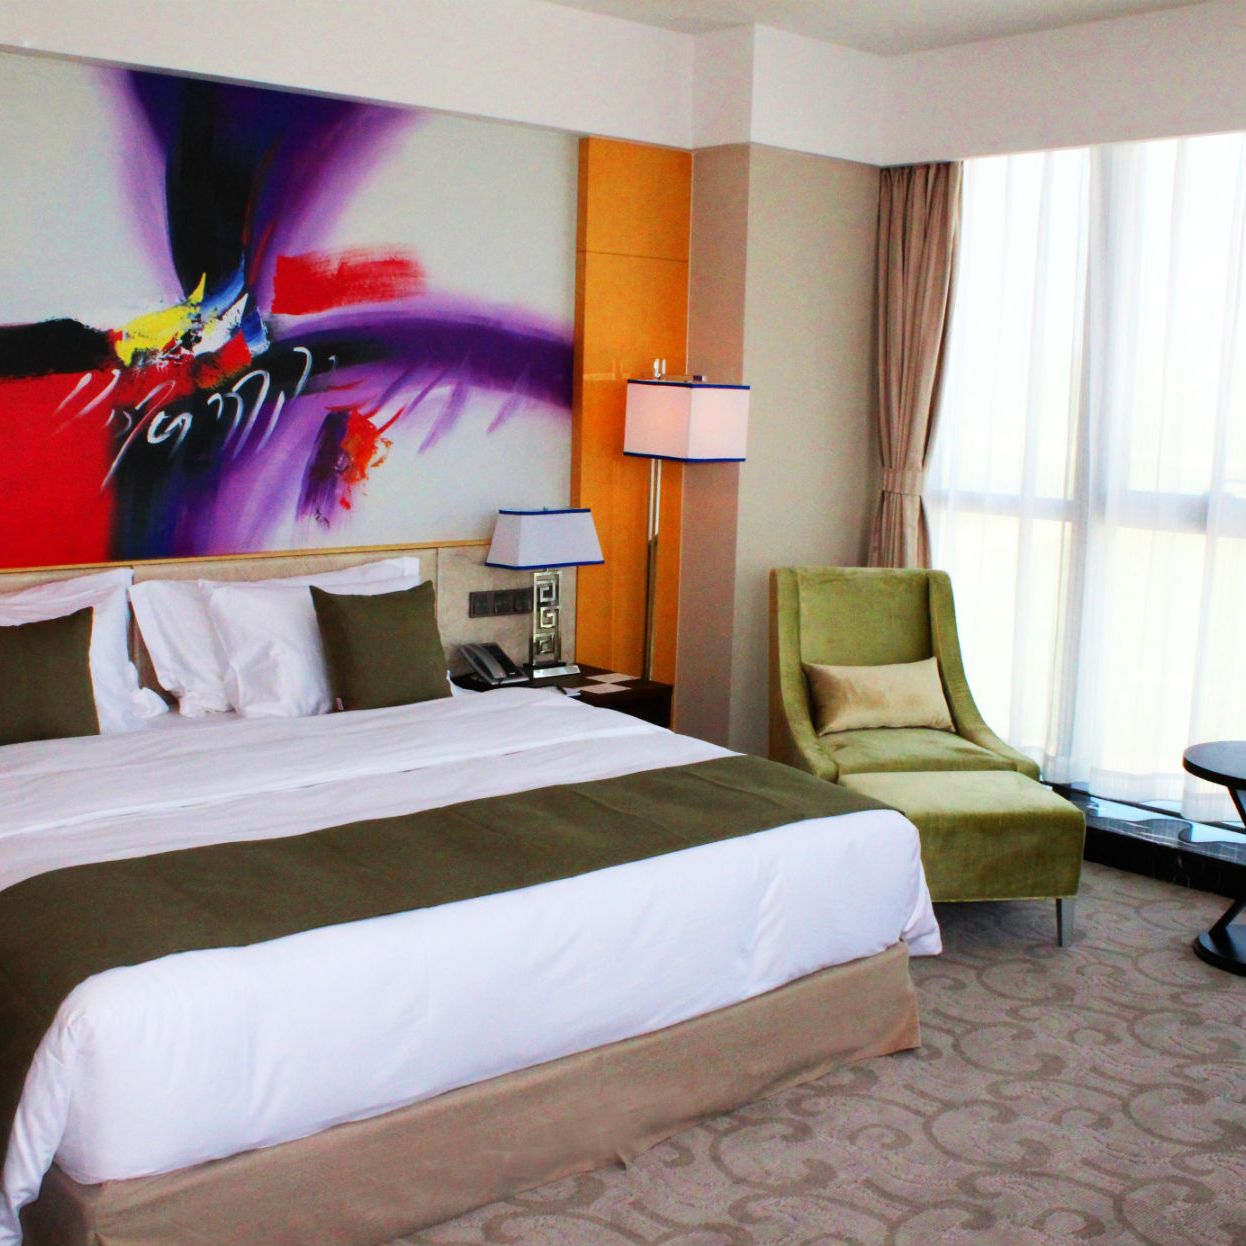 Hotels Preference Hualing Tbilisi Room